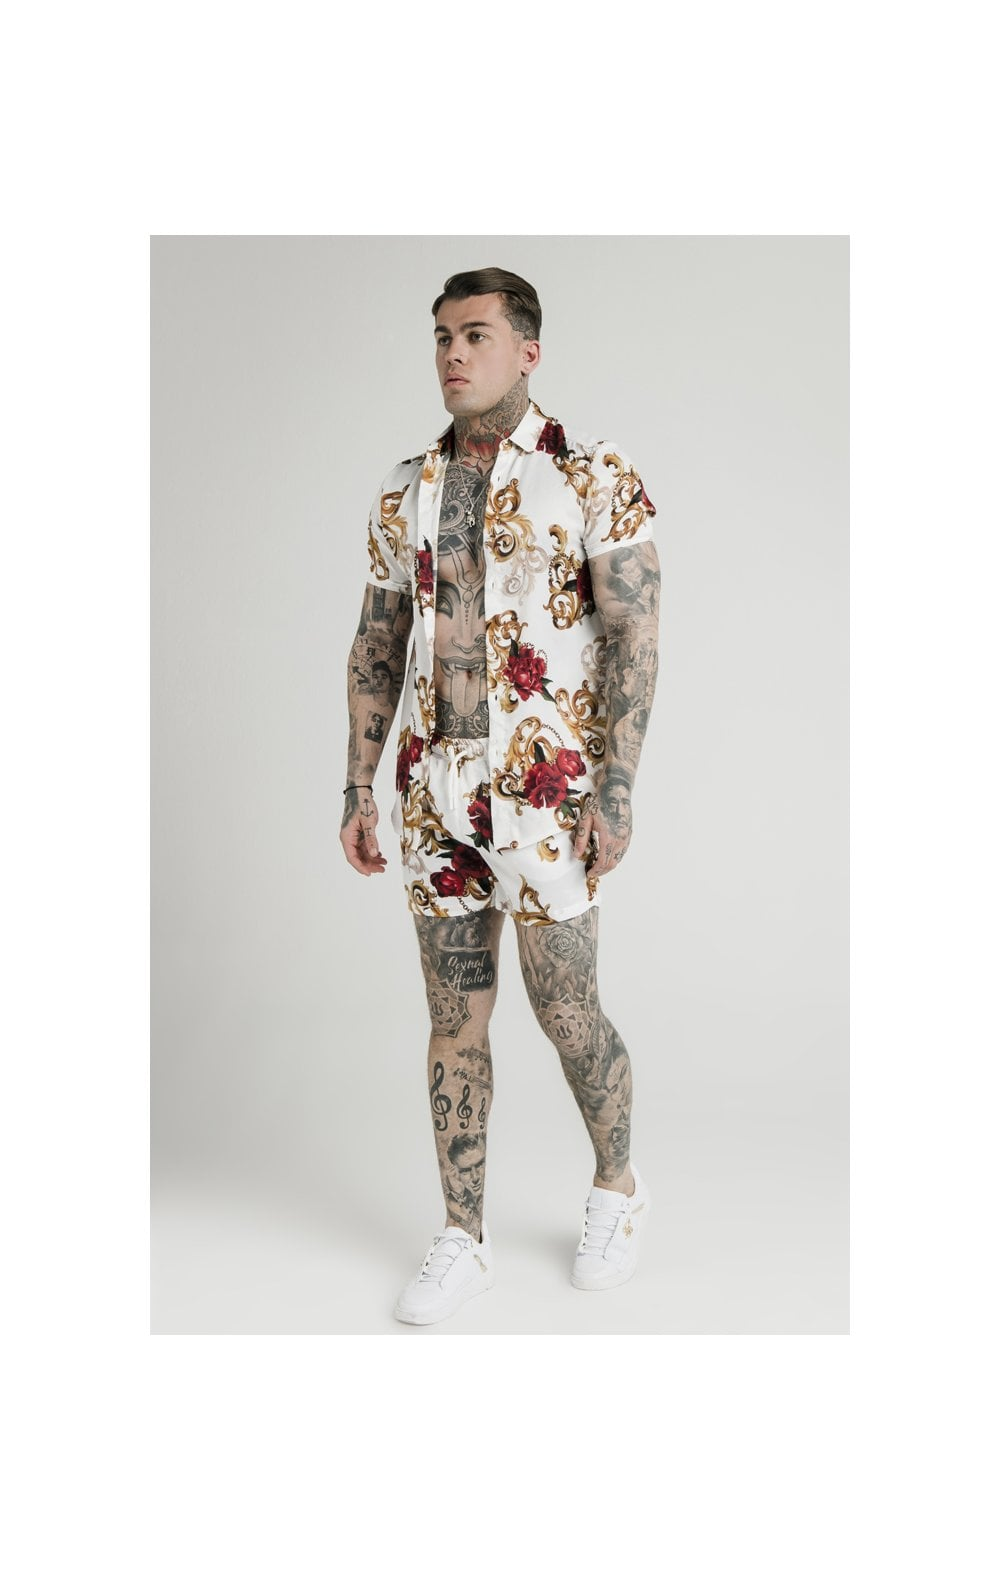 SikSilk x Dani Alves Swim Shorts - Floral Elegance (6)